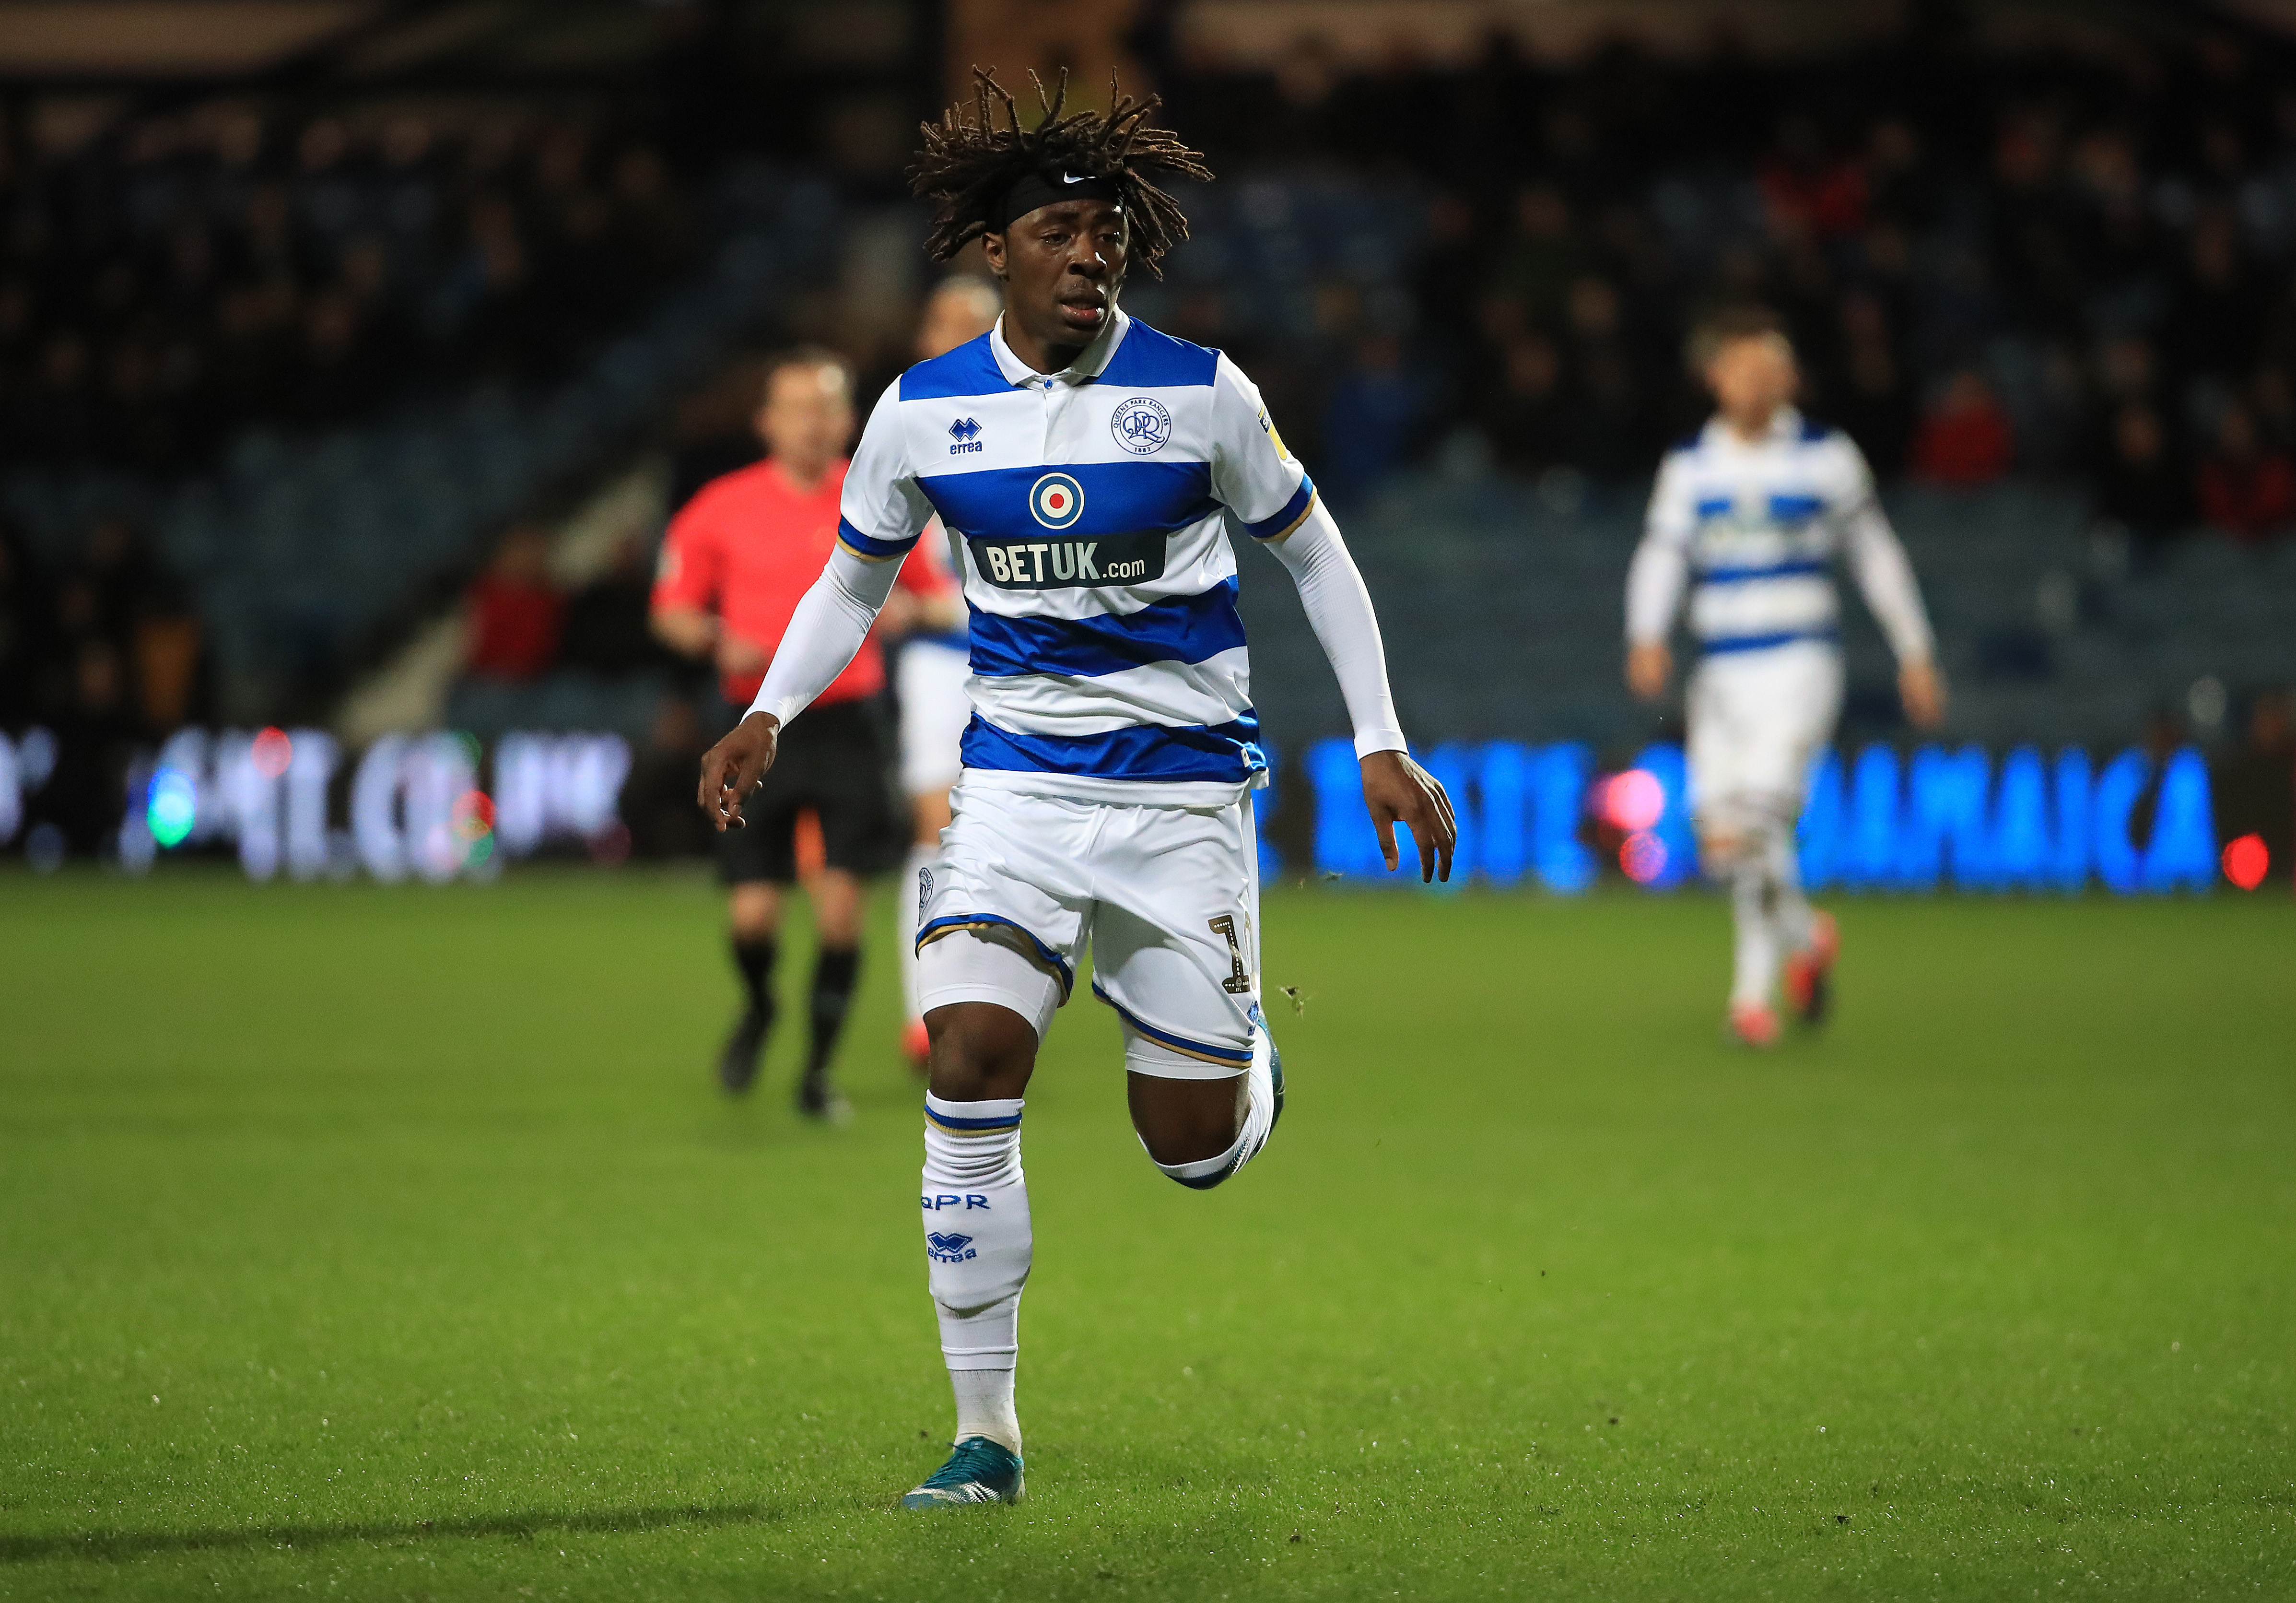 Eze's price-tag could be 'a stumbling block' for Newcastle United (Eze is in action in the photo)